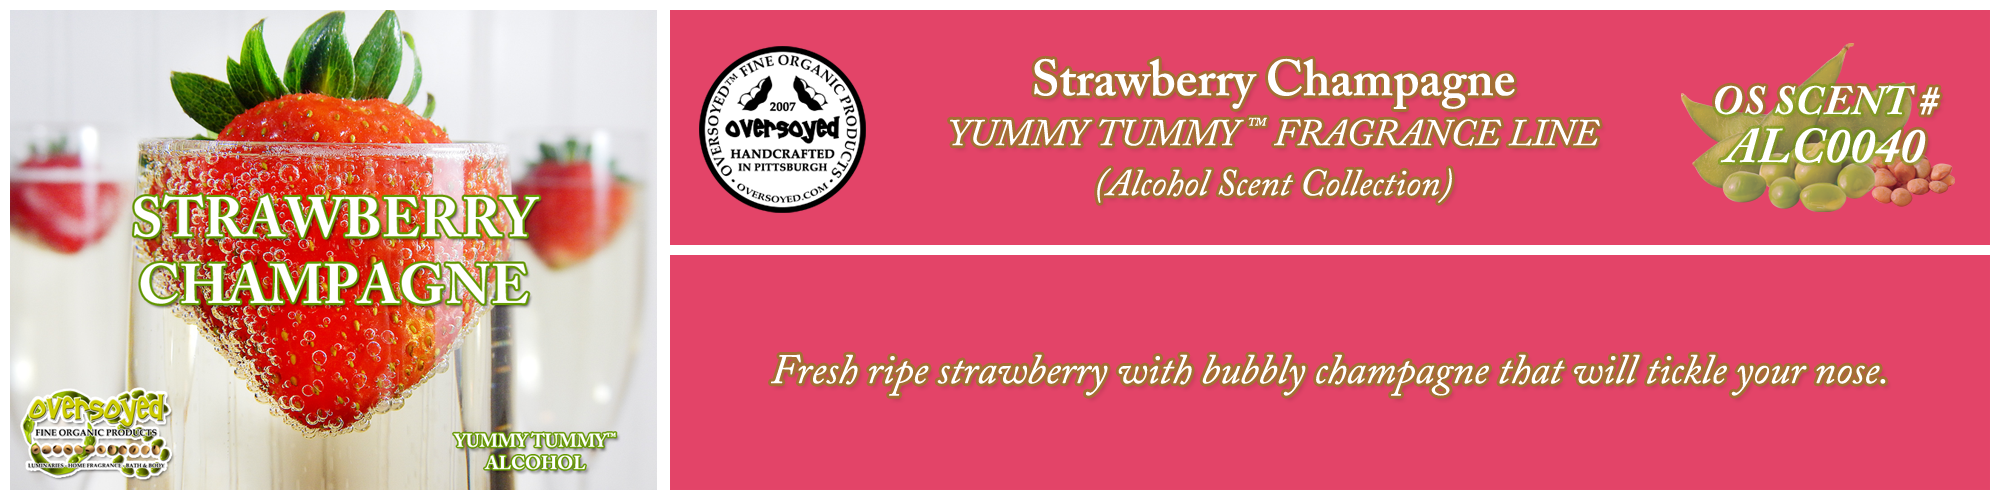 Strawberry Champagne Handcrafted Products Collection